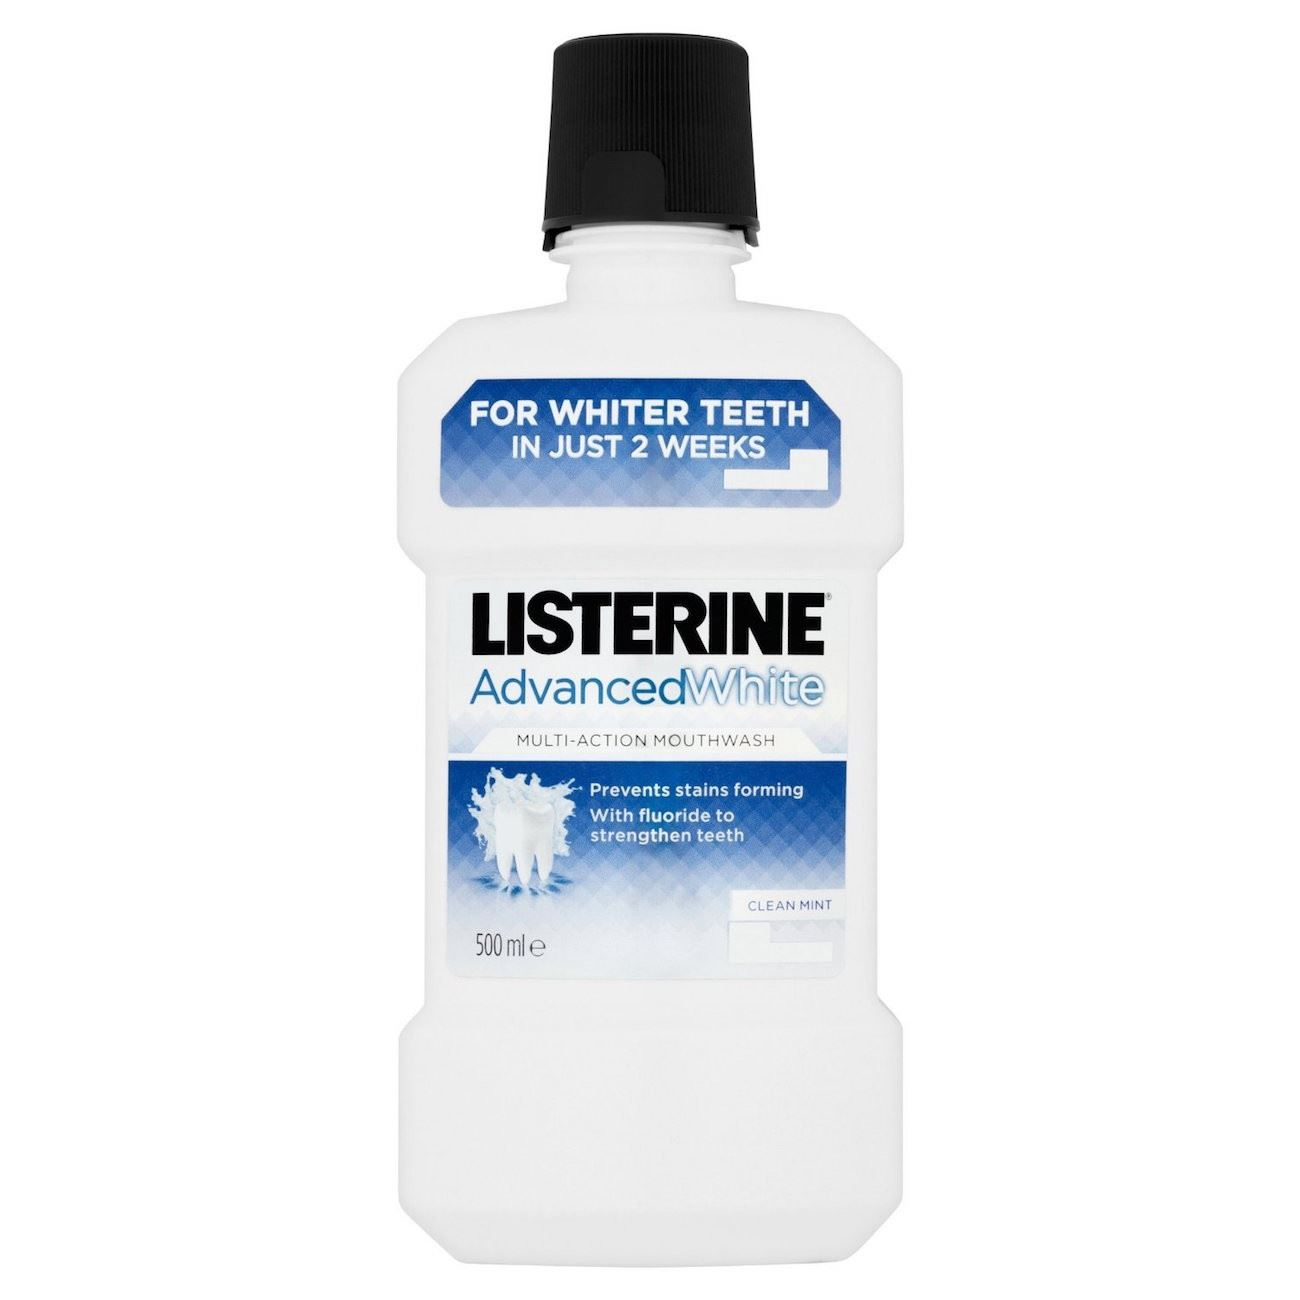 Listerine advanced white multi action mouthwash clean mint 500ml 2 pack ebay - Unusual uses for mouthwash ...